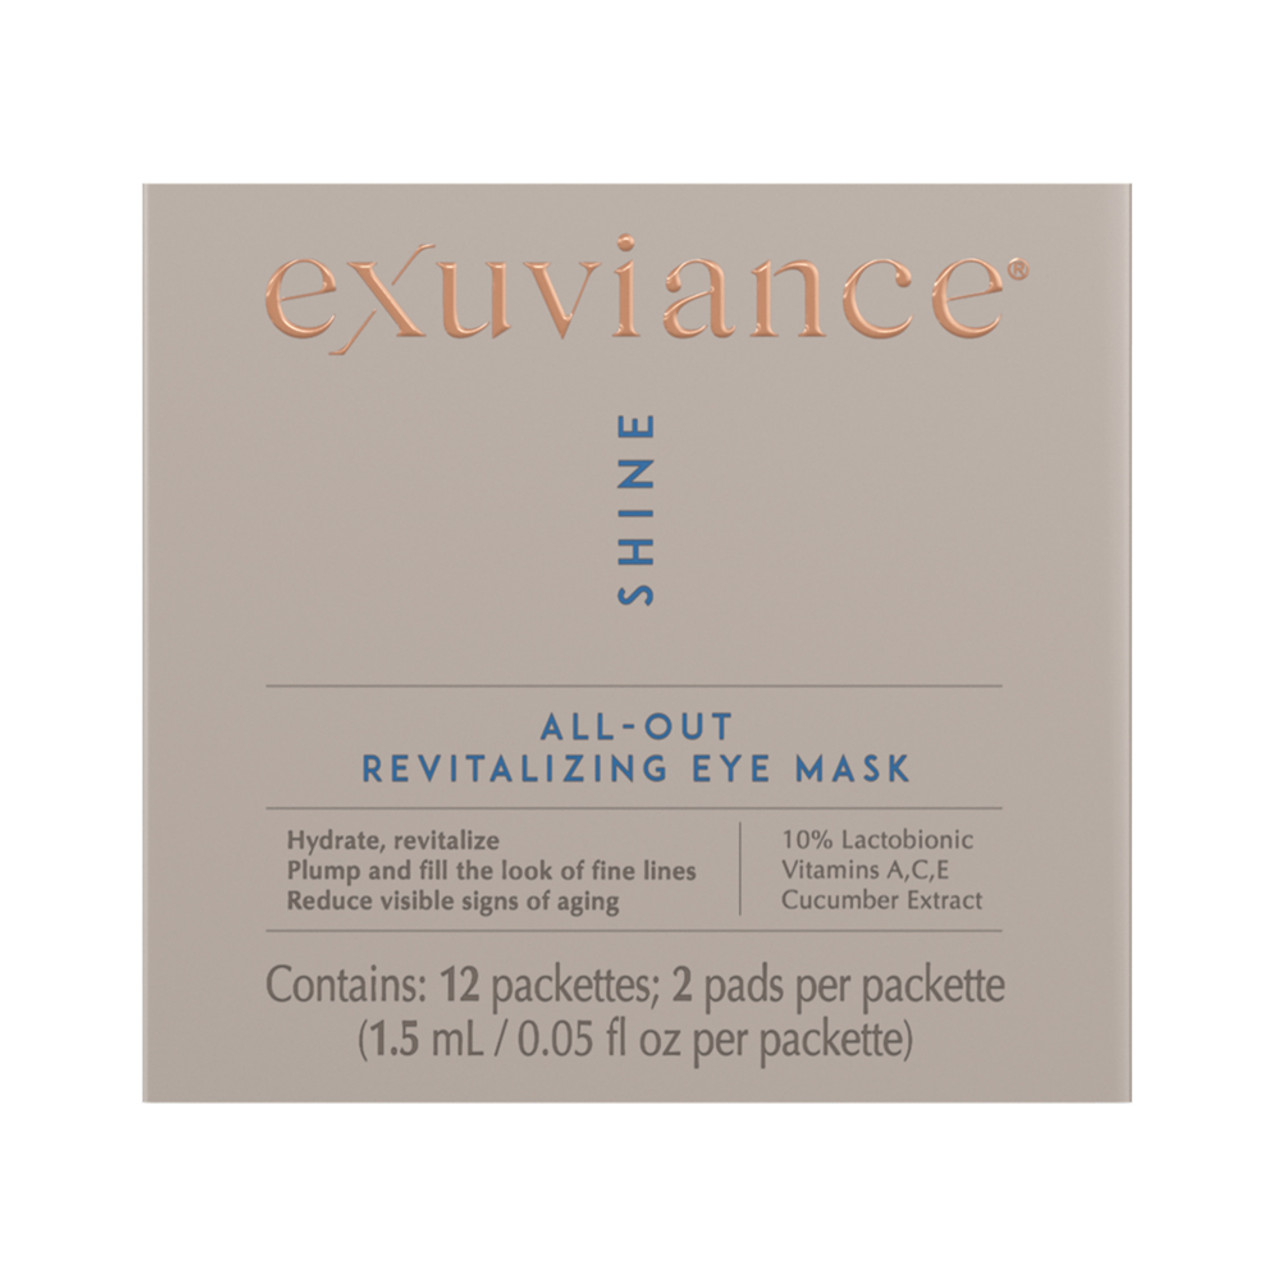 Exuviance All-Out Revitalizing Eye Mask BeautifiedYou.com